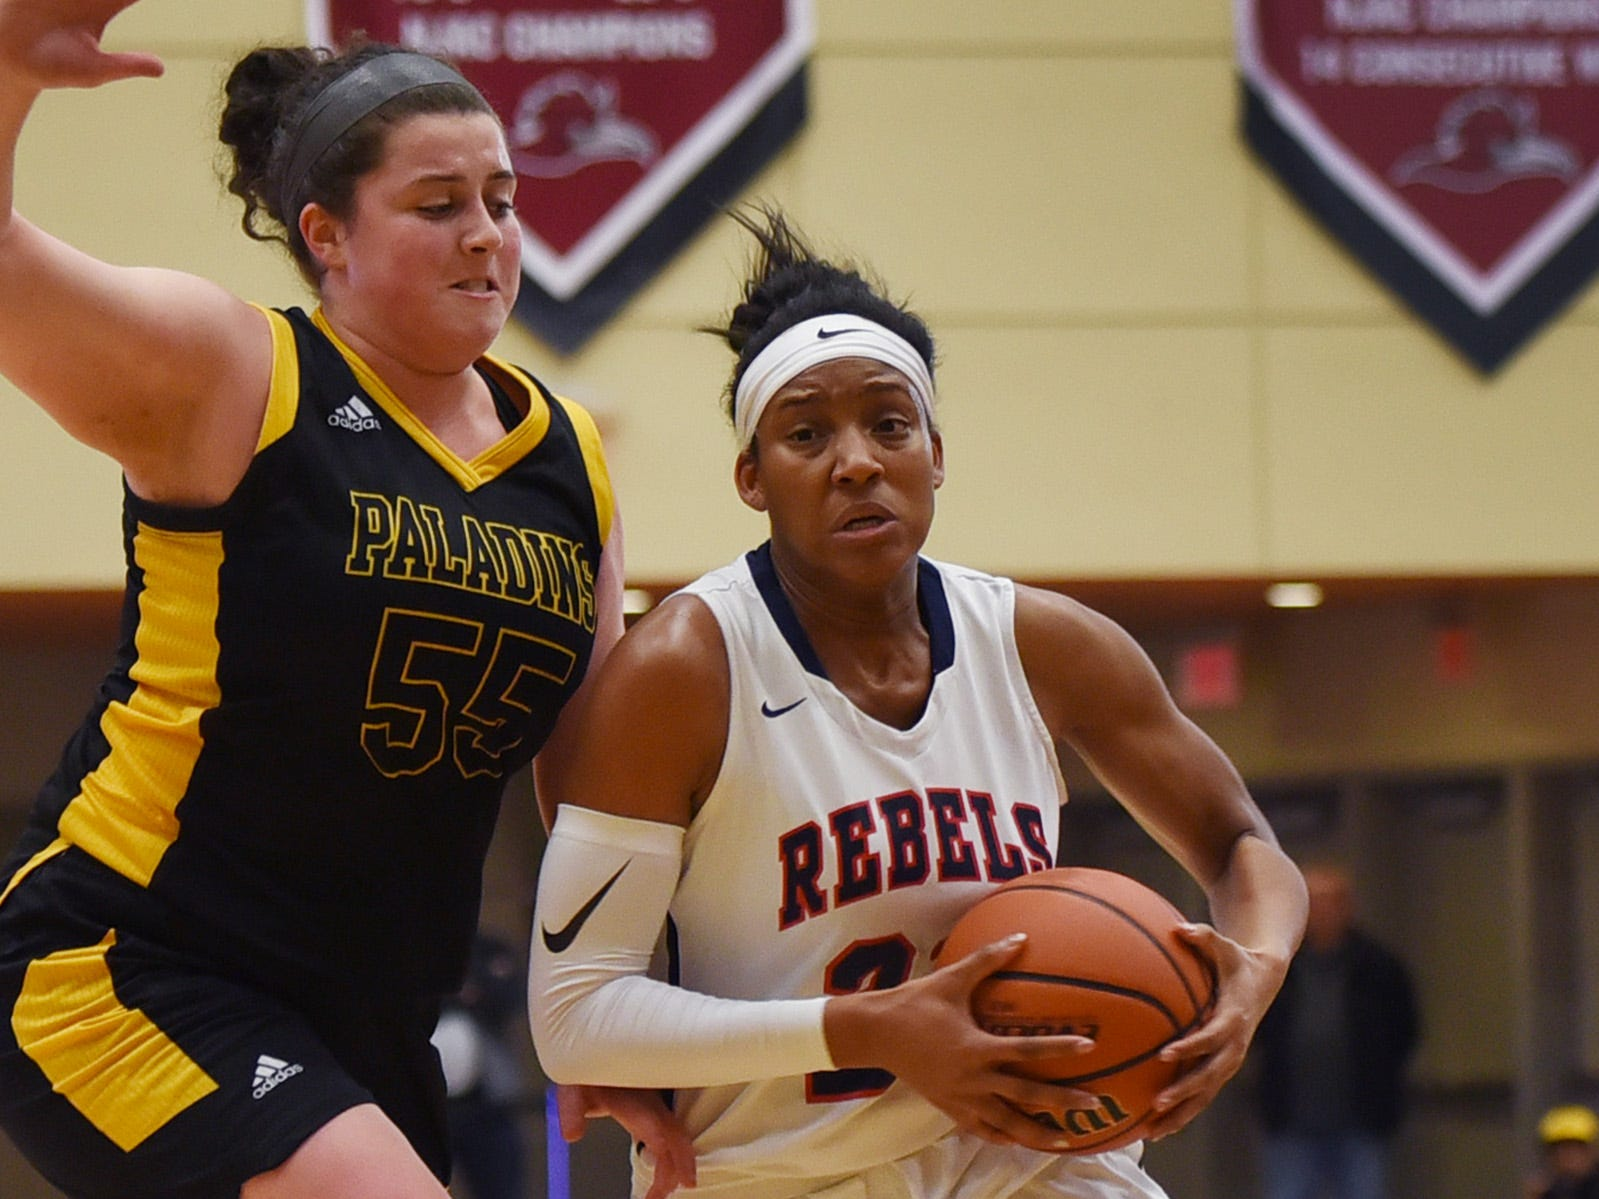 Sydnei Caldwell (no.21) of Saddle River Day makes her way past Julianna Kascic (no.55) of Paramus Catholic in the first half during the 2019 Bergen County girls basketball championship semifinal at Ramapo College in Mahwah on 02/10/19.